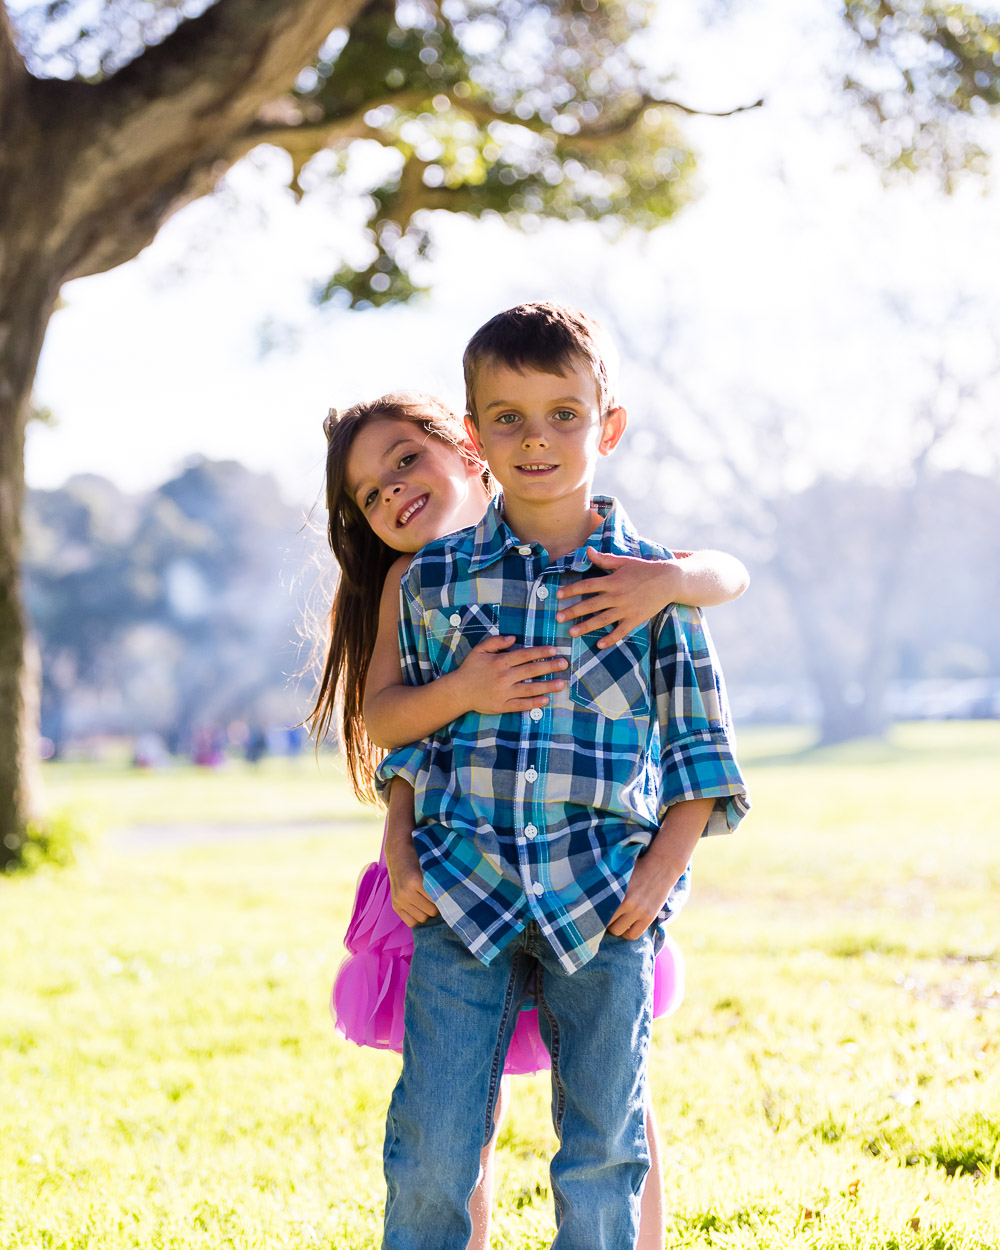 Real connections, and love with siblings make very strong images.